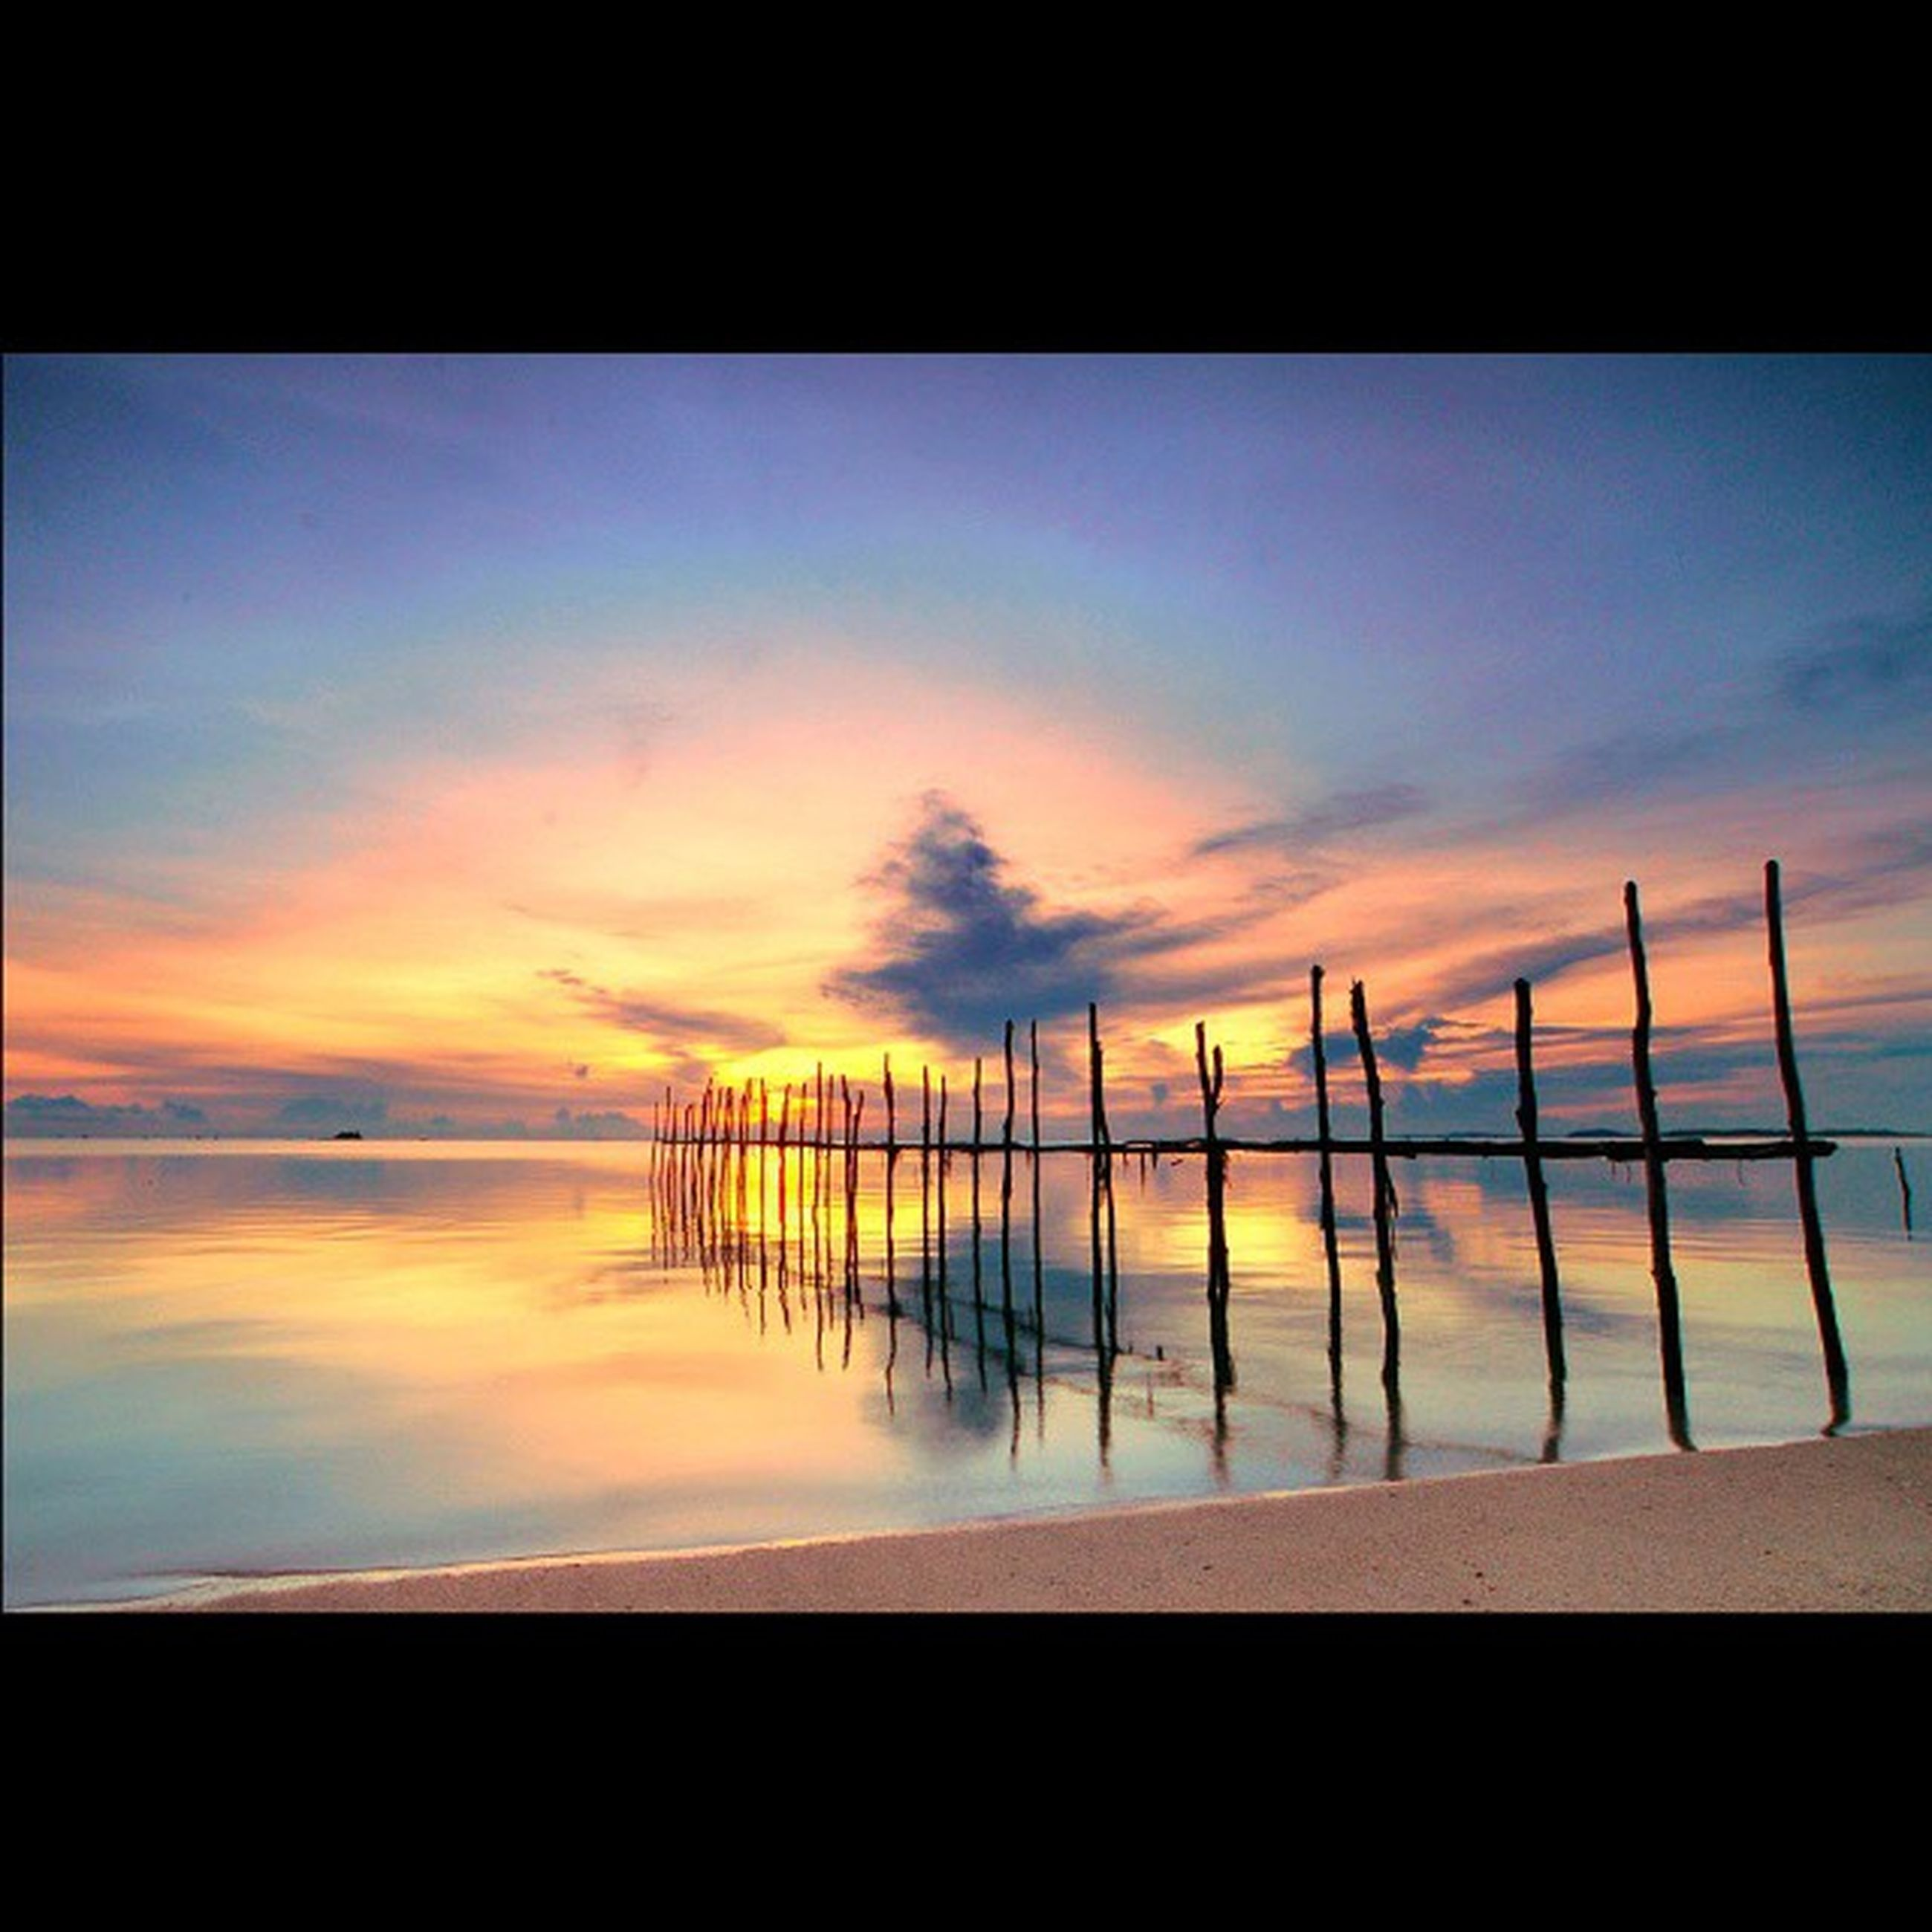 sea, sunset, water, sky, tranquil scene, tranquility, beach, scenics, horizon over water, beauty in nature, nature, shore, cloud - sky, idyllic, silhouette, pier, cloud, wooden post, reflection, orange color